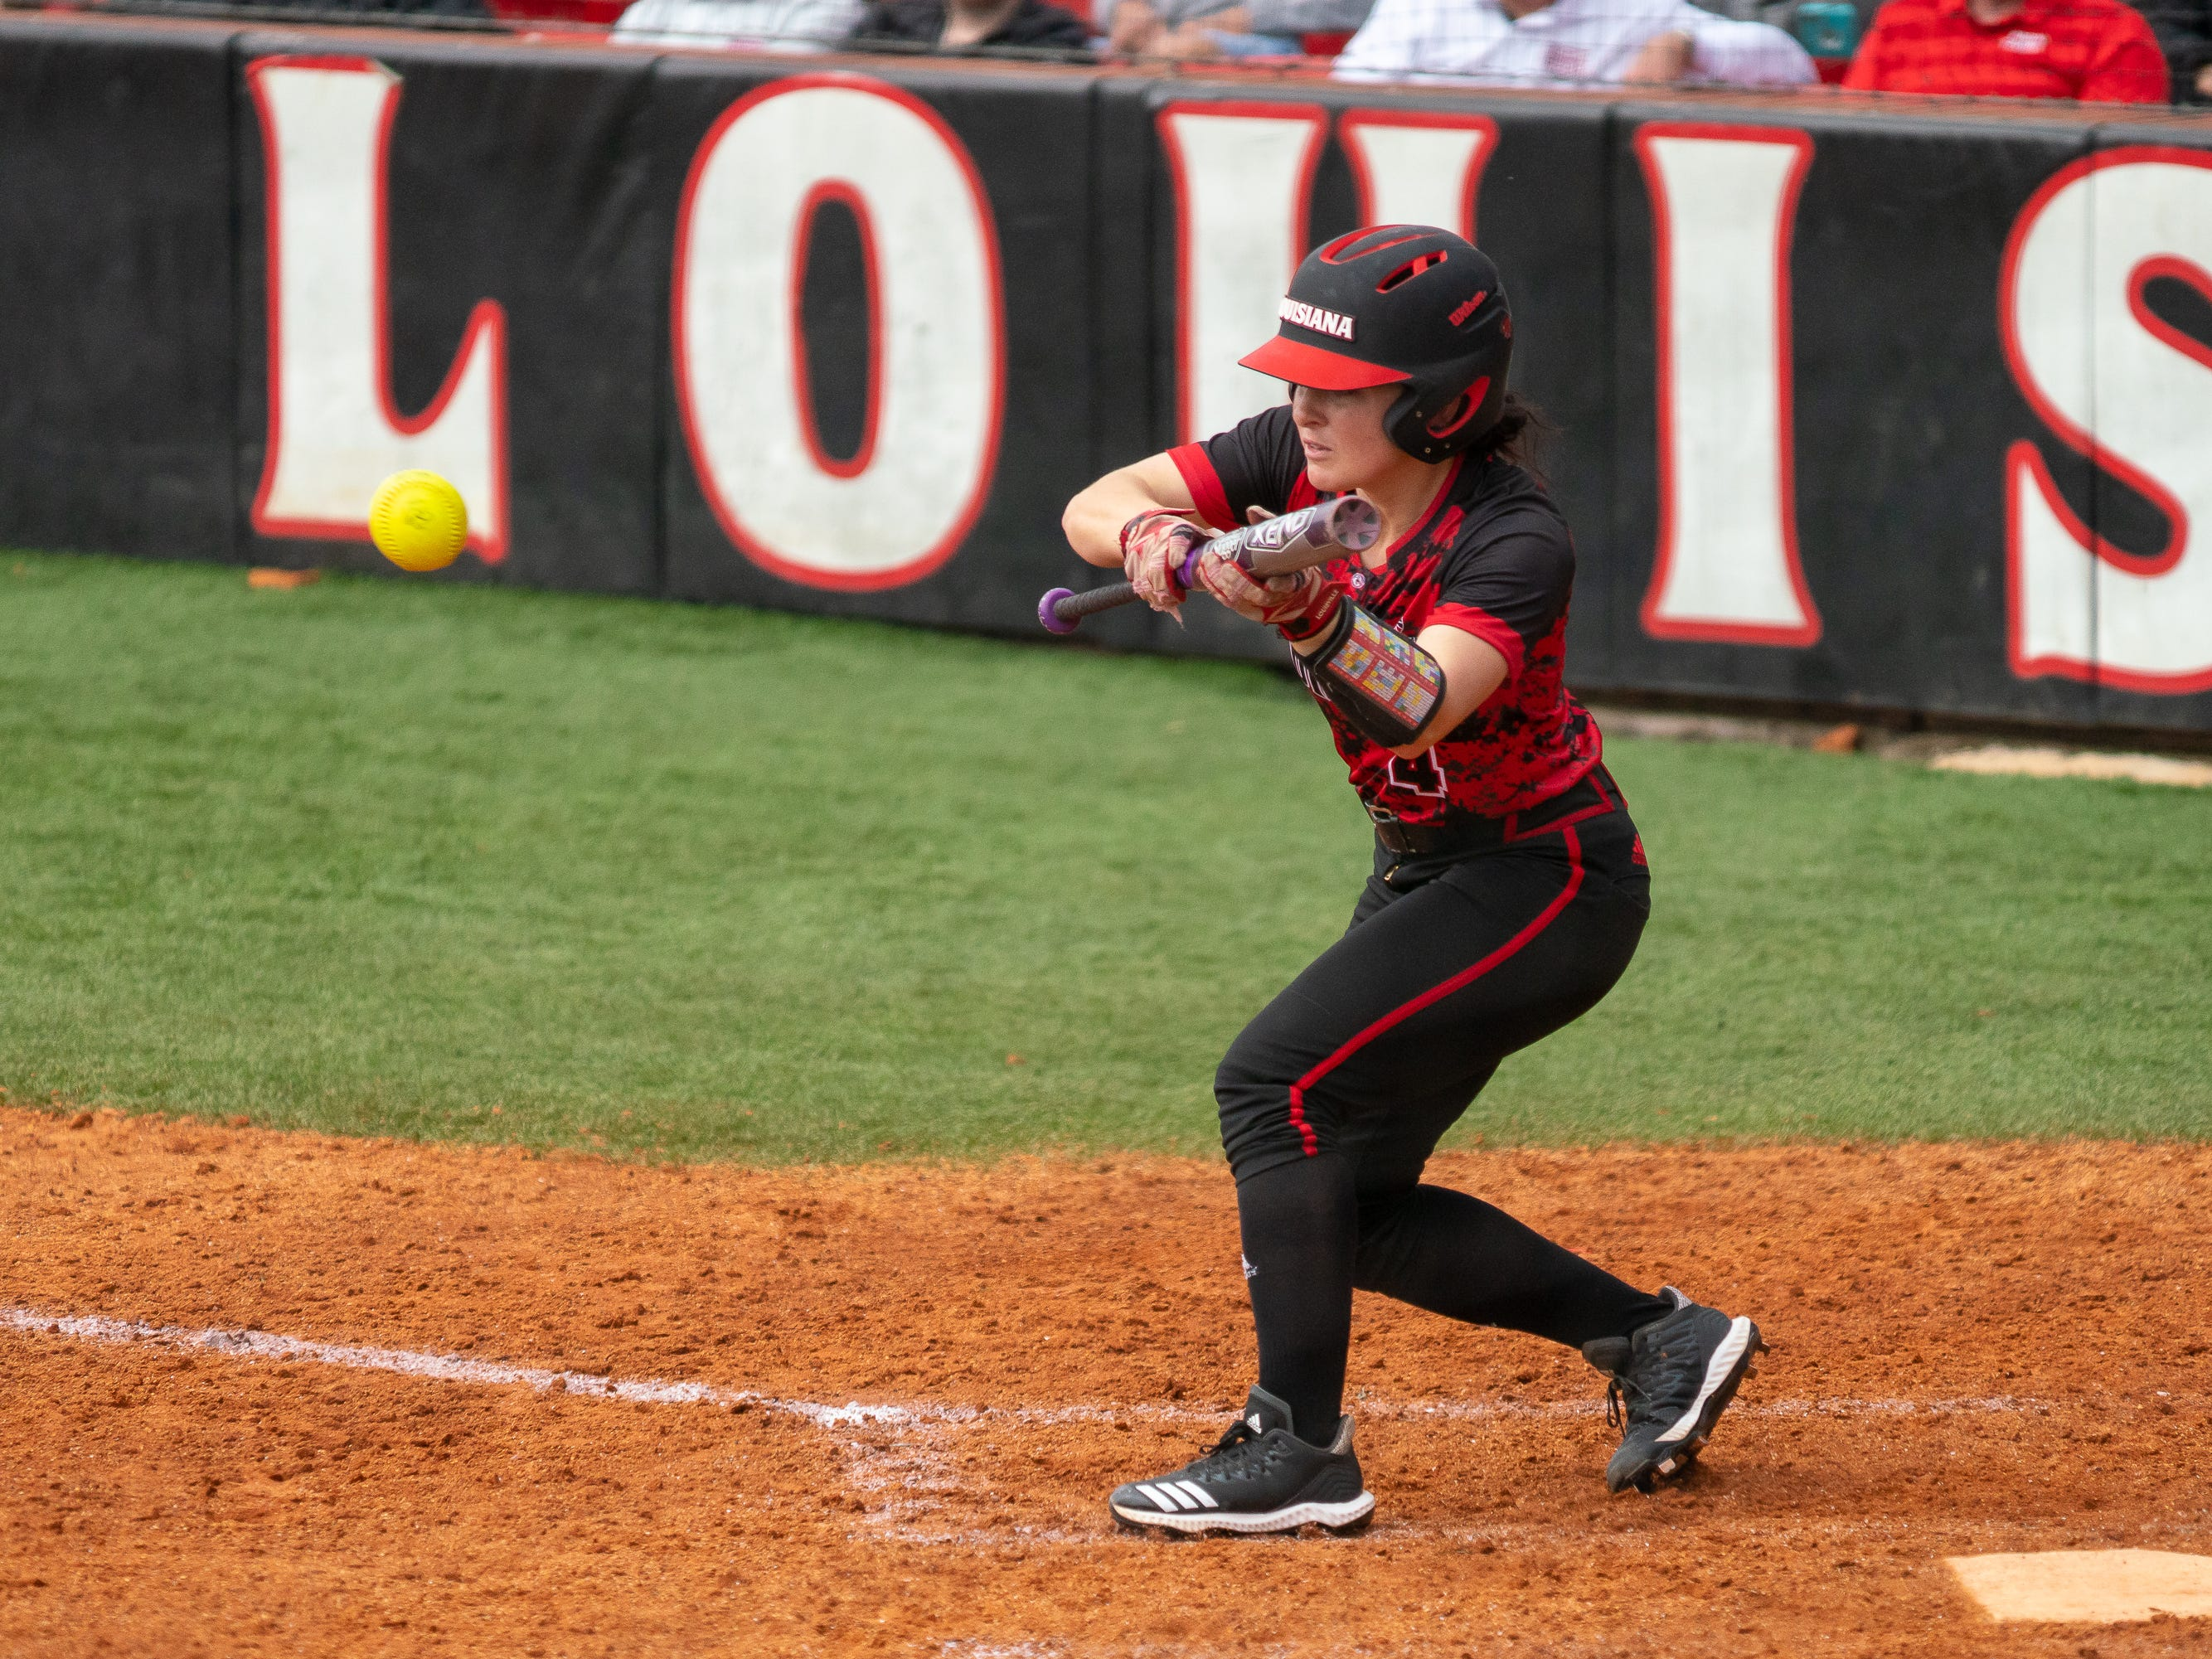 UL's Keeli Milligan attempts to hit the ball with a bunt as the Ragin' Cajuns take on Stephen F. Austin at Lamson Park on Saturday, Feb. 16, 2019.